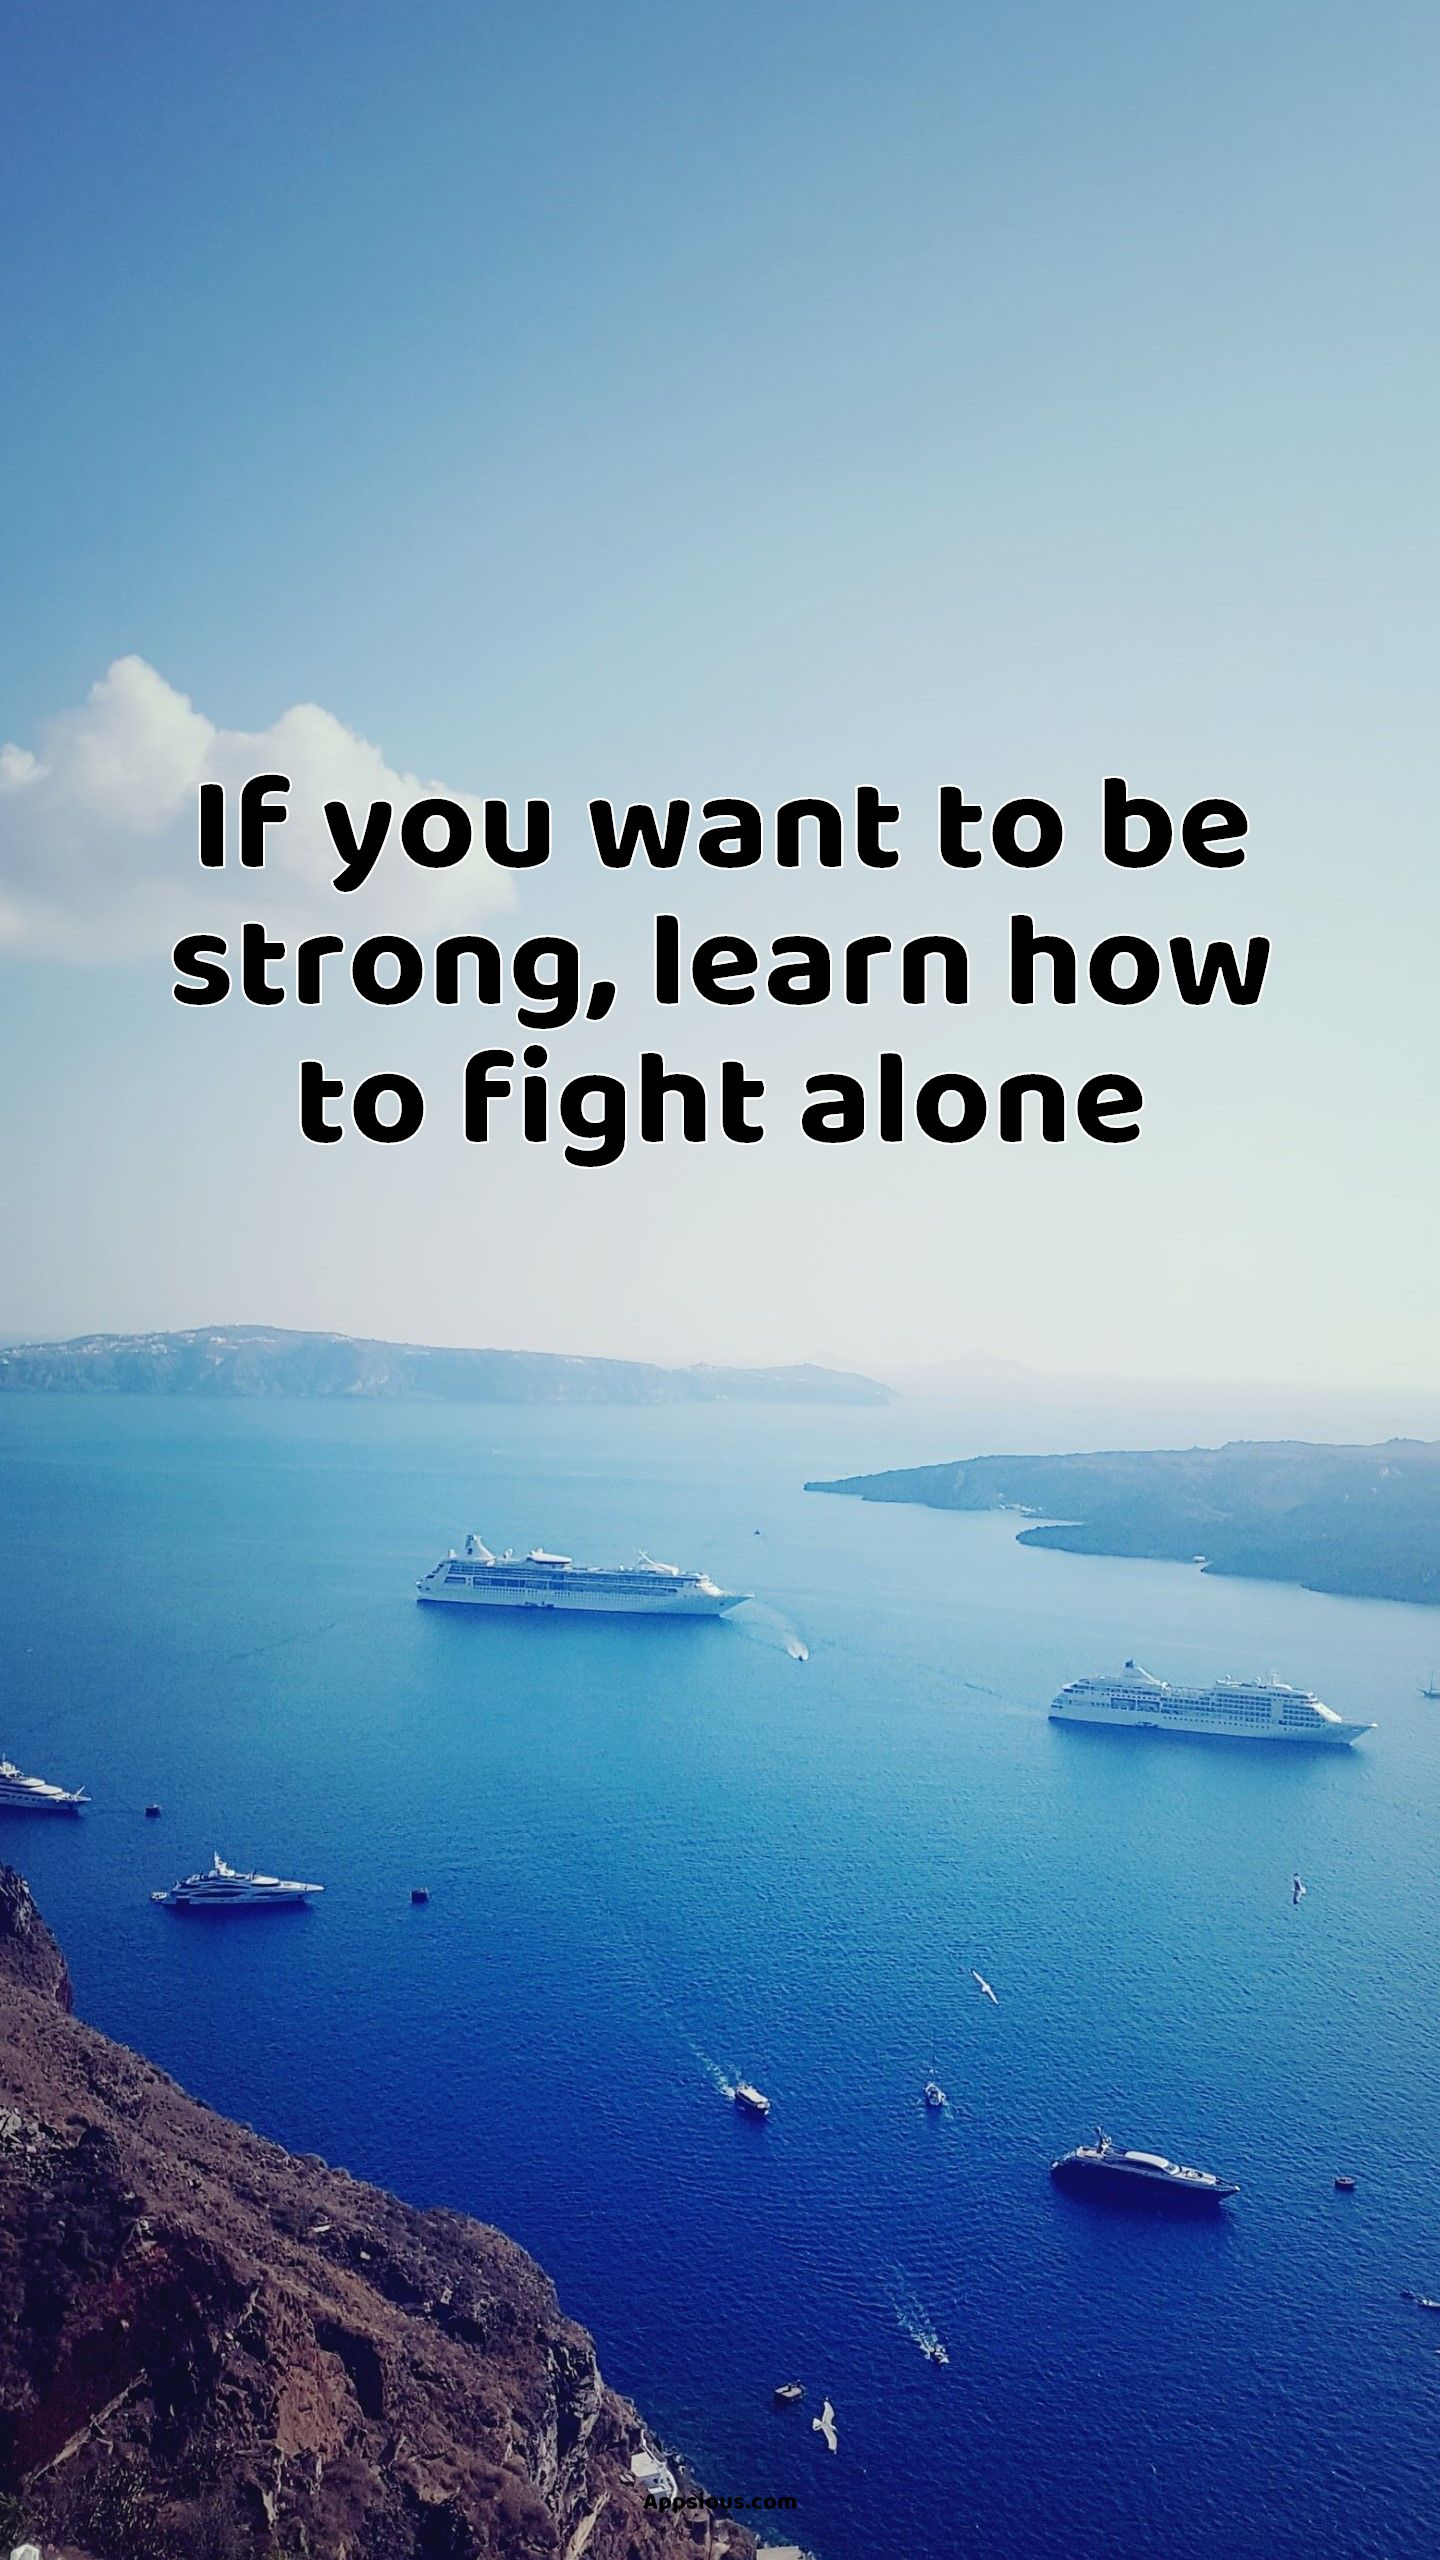 If you want to be strong, learn how to fight alone